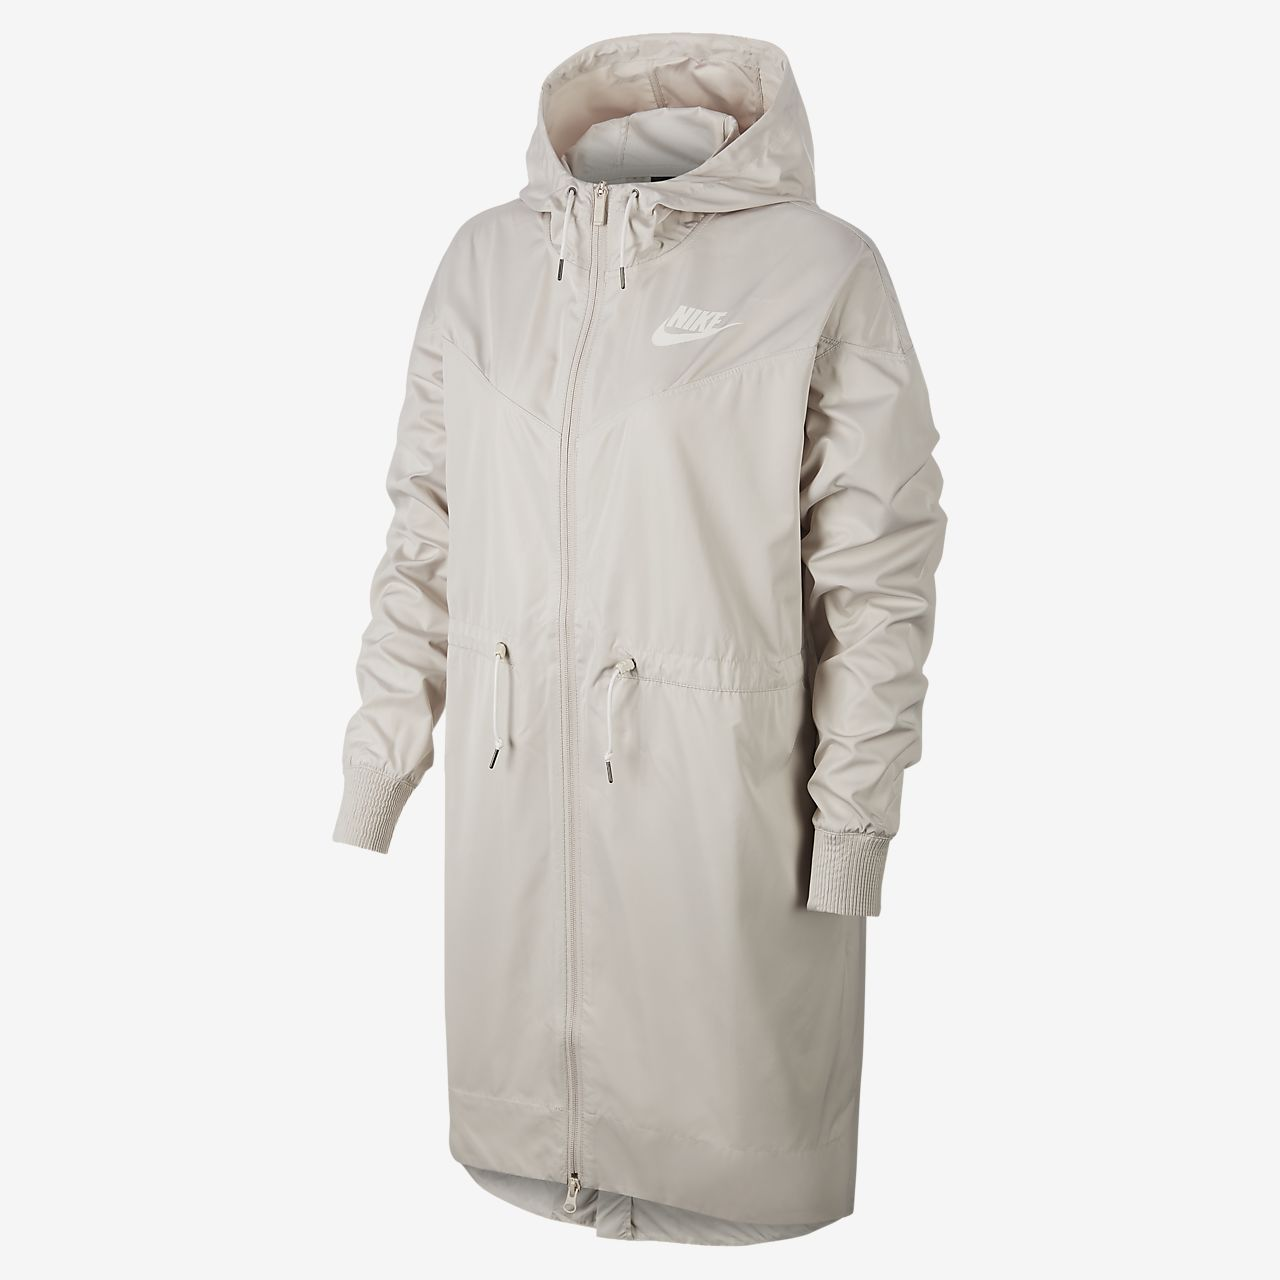 Nike Sportswear Shield Windrunner Women s Jacket. Nike.com 63daf64c19